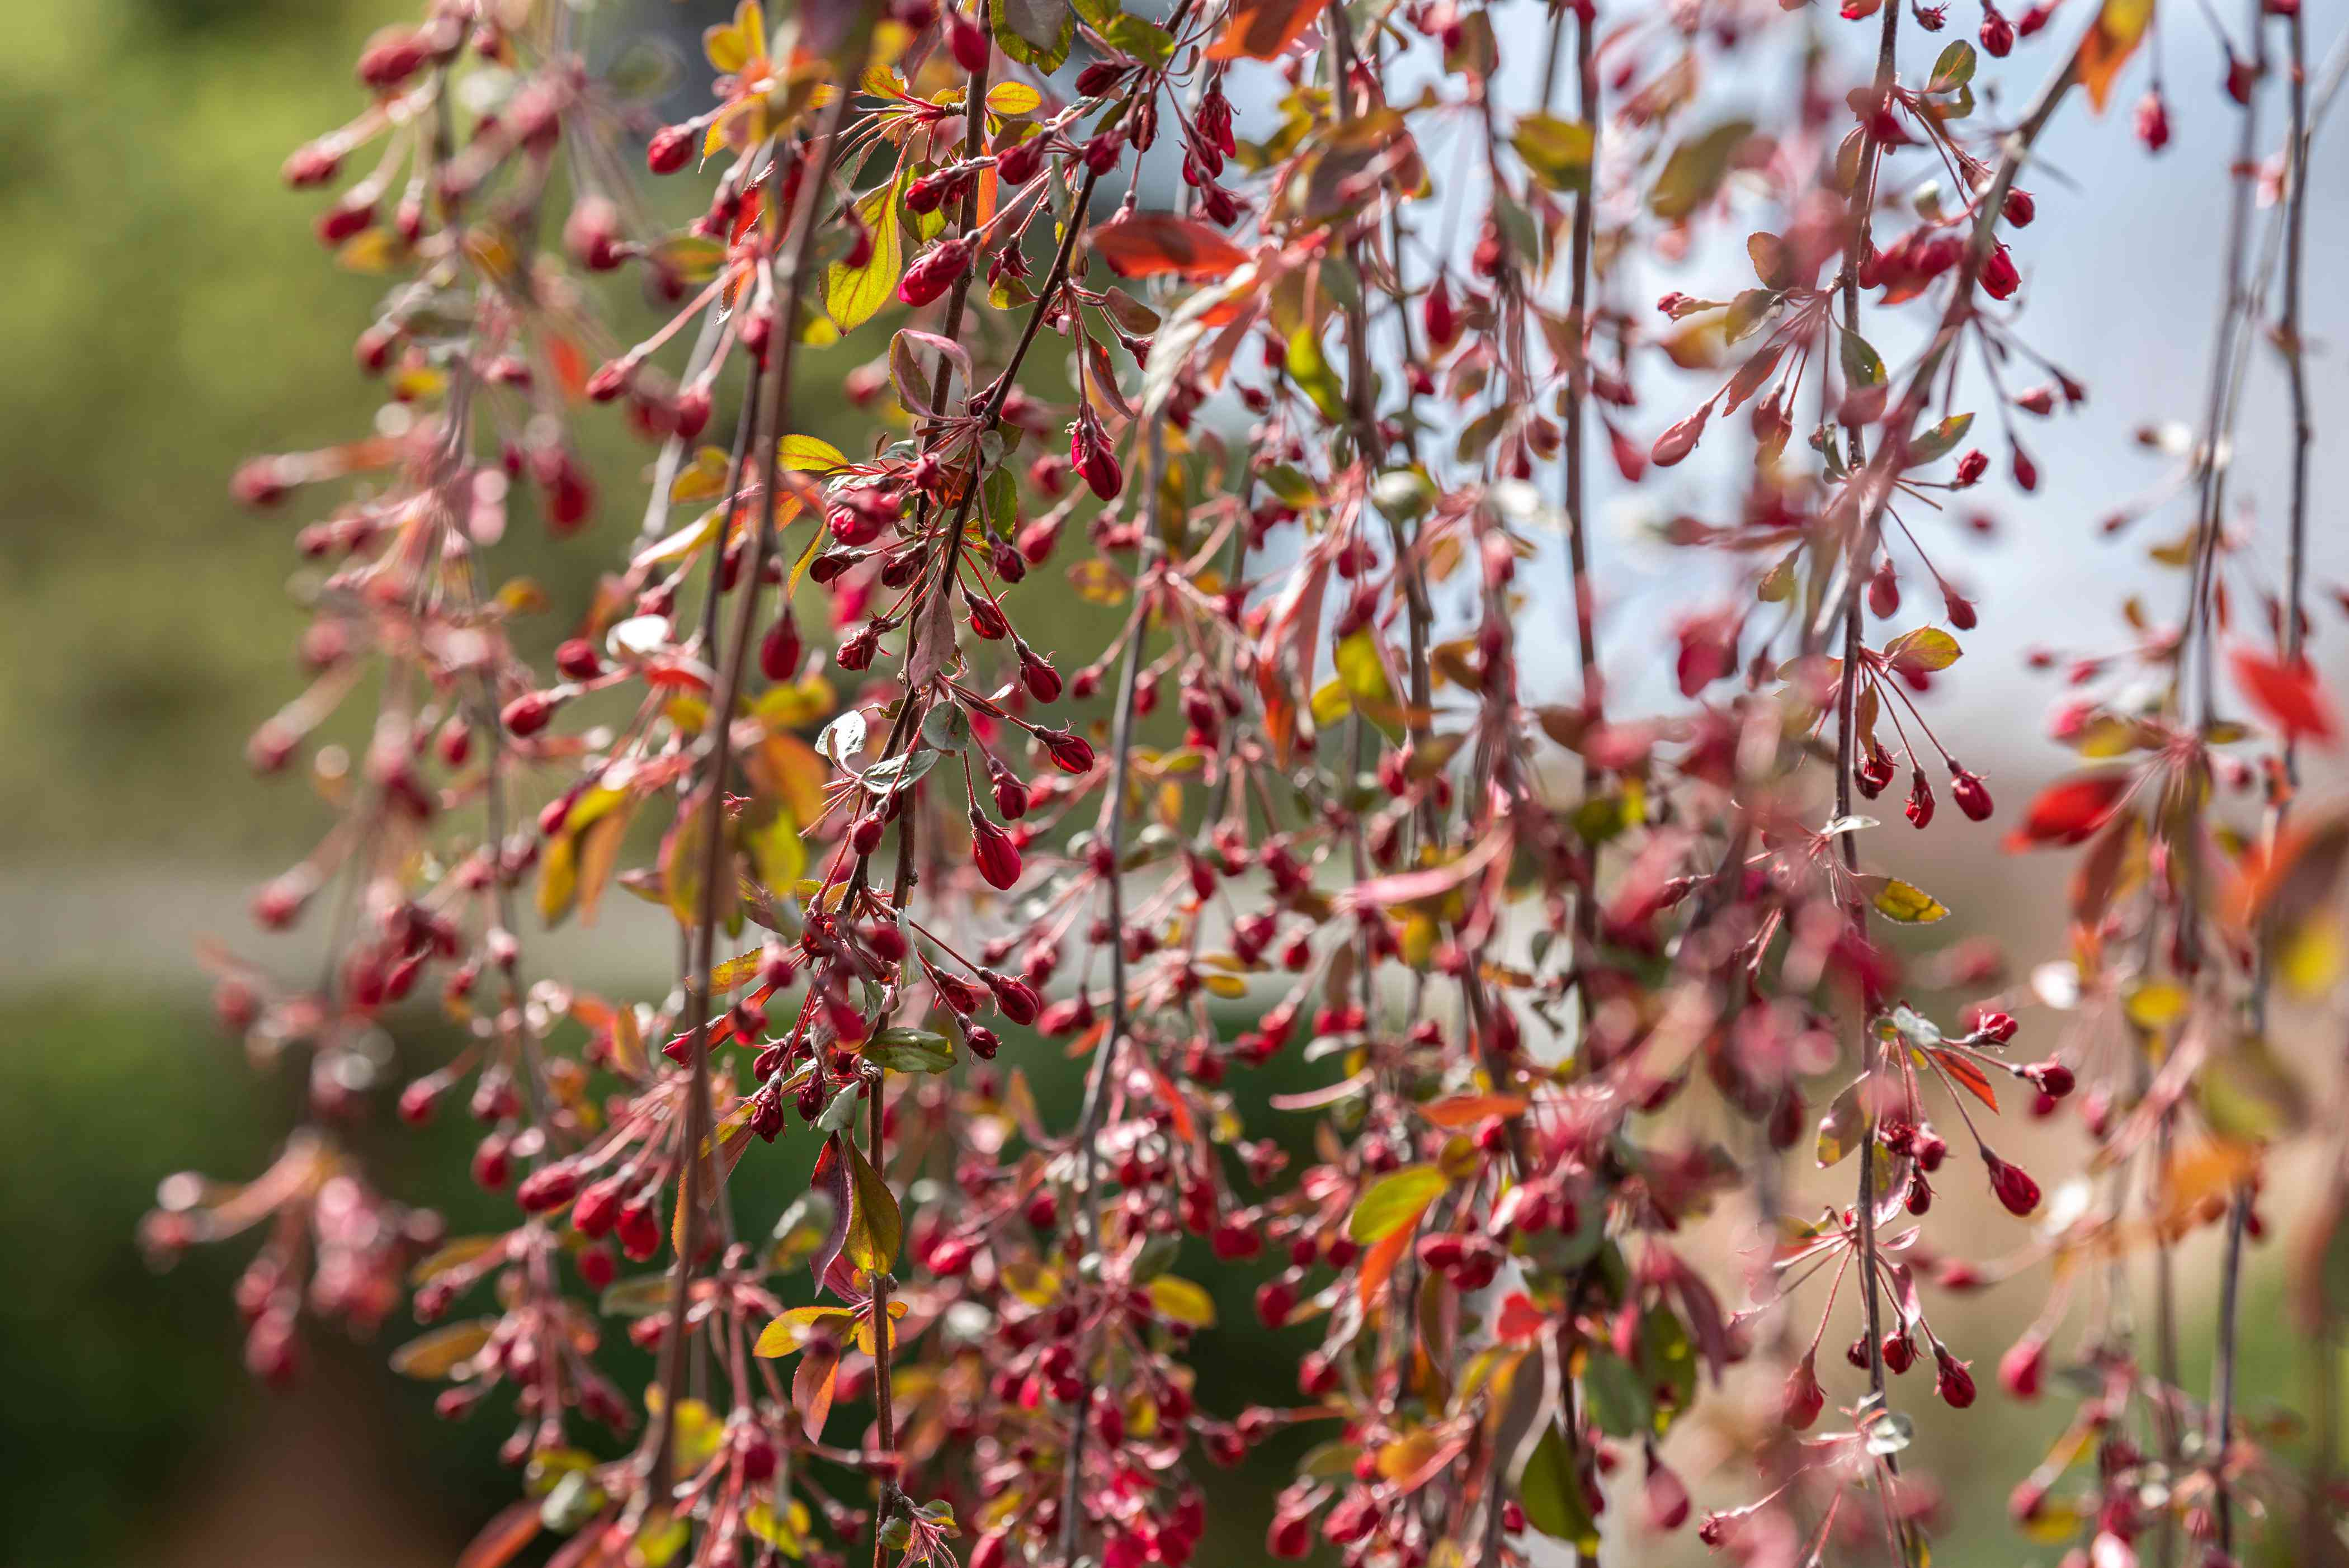 Weeping crabapple tree branches with small red fruit and yellow leaves closeup